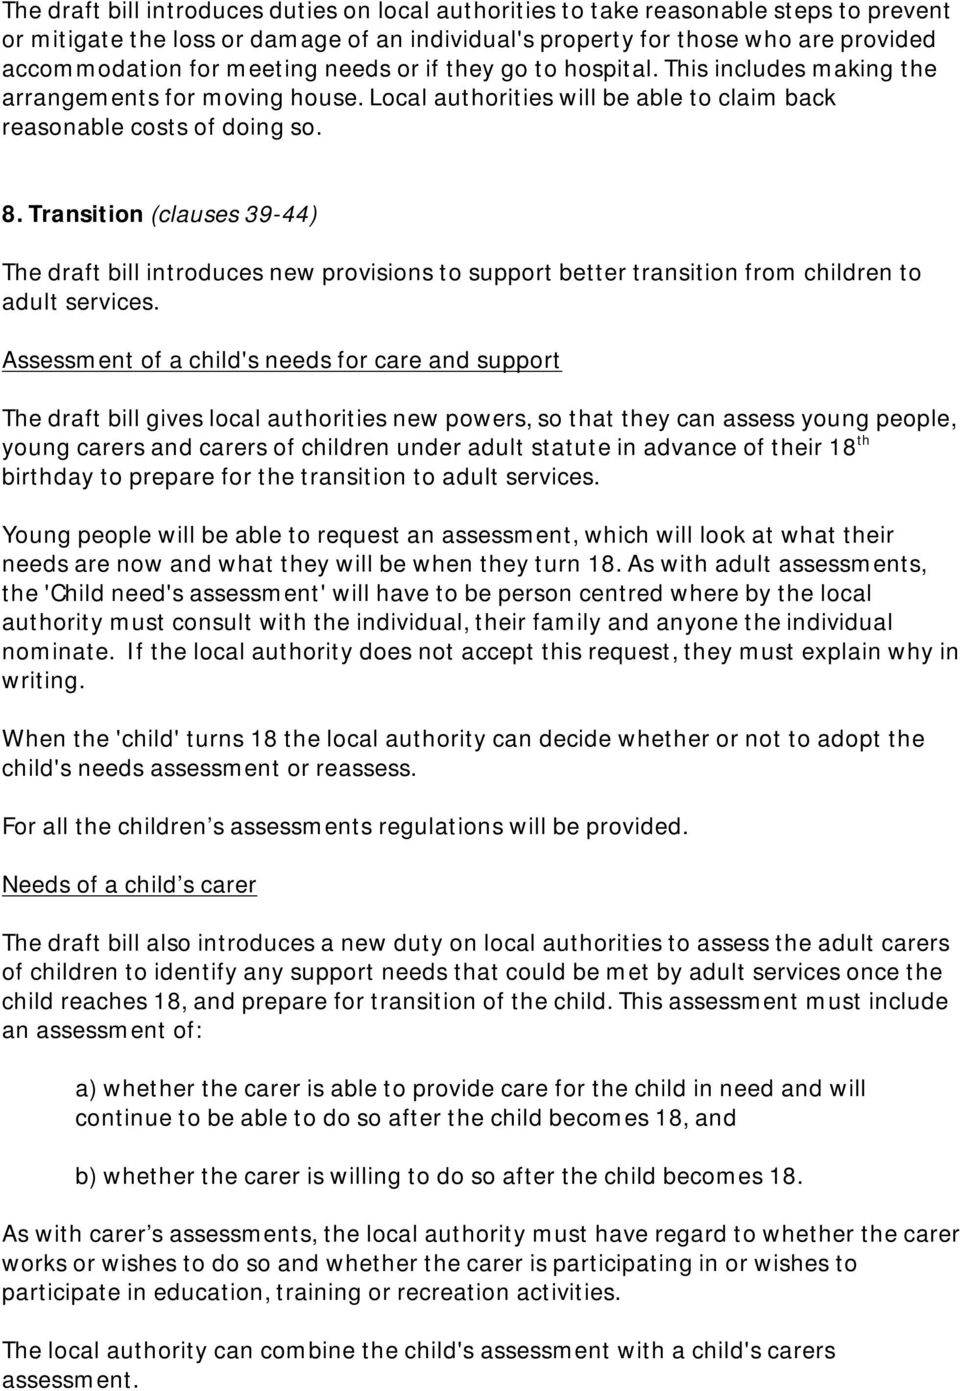 Transition (clauses 39-44) The draft bill introduces new provisions to support better transition from children to adult services.